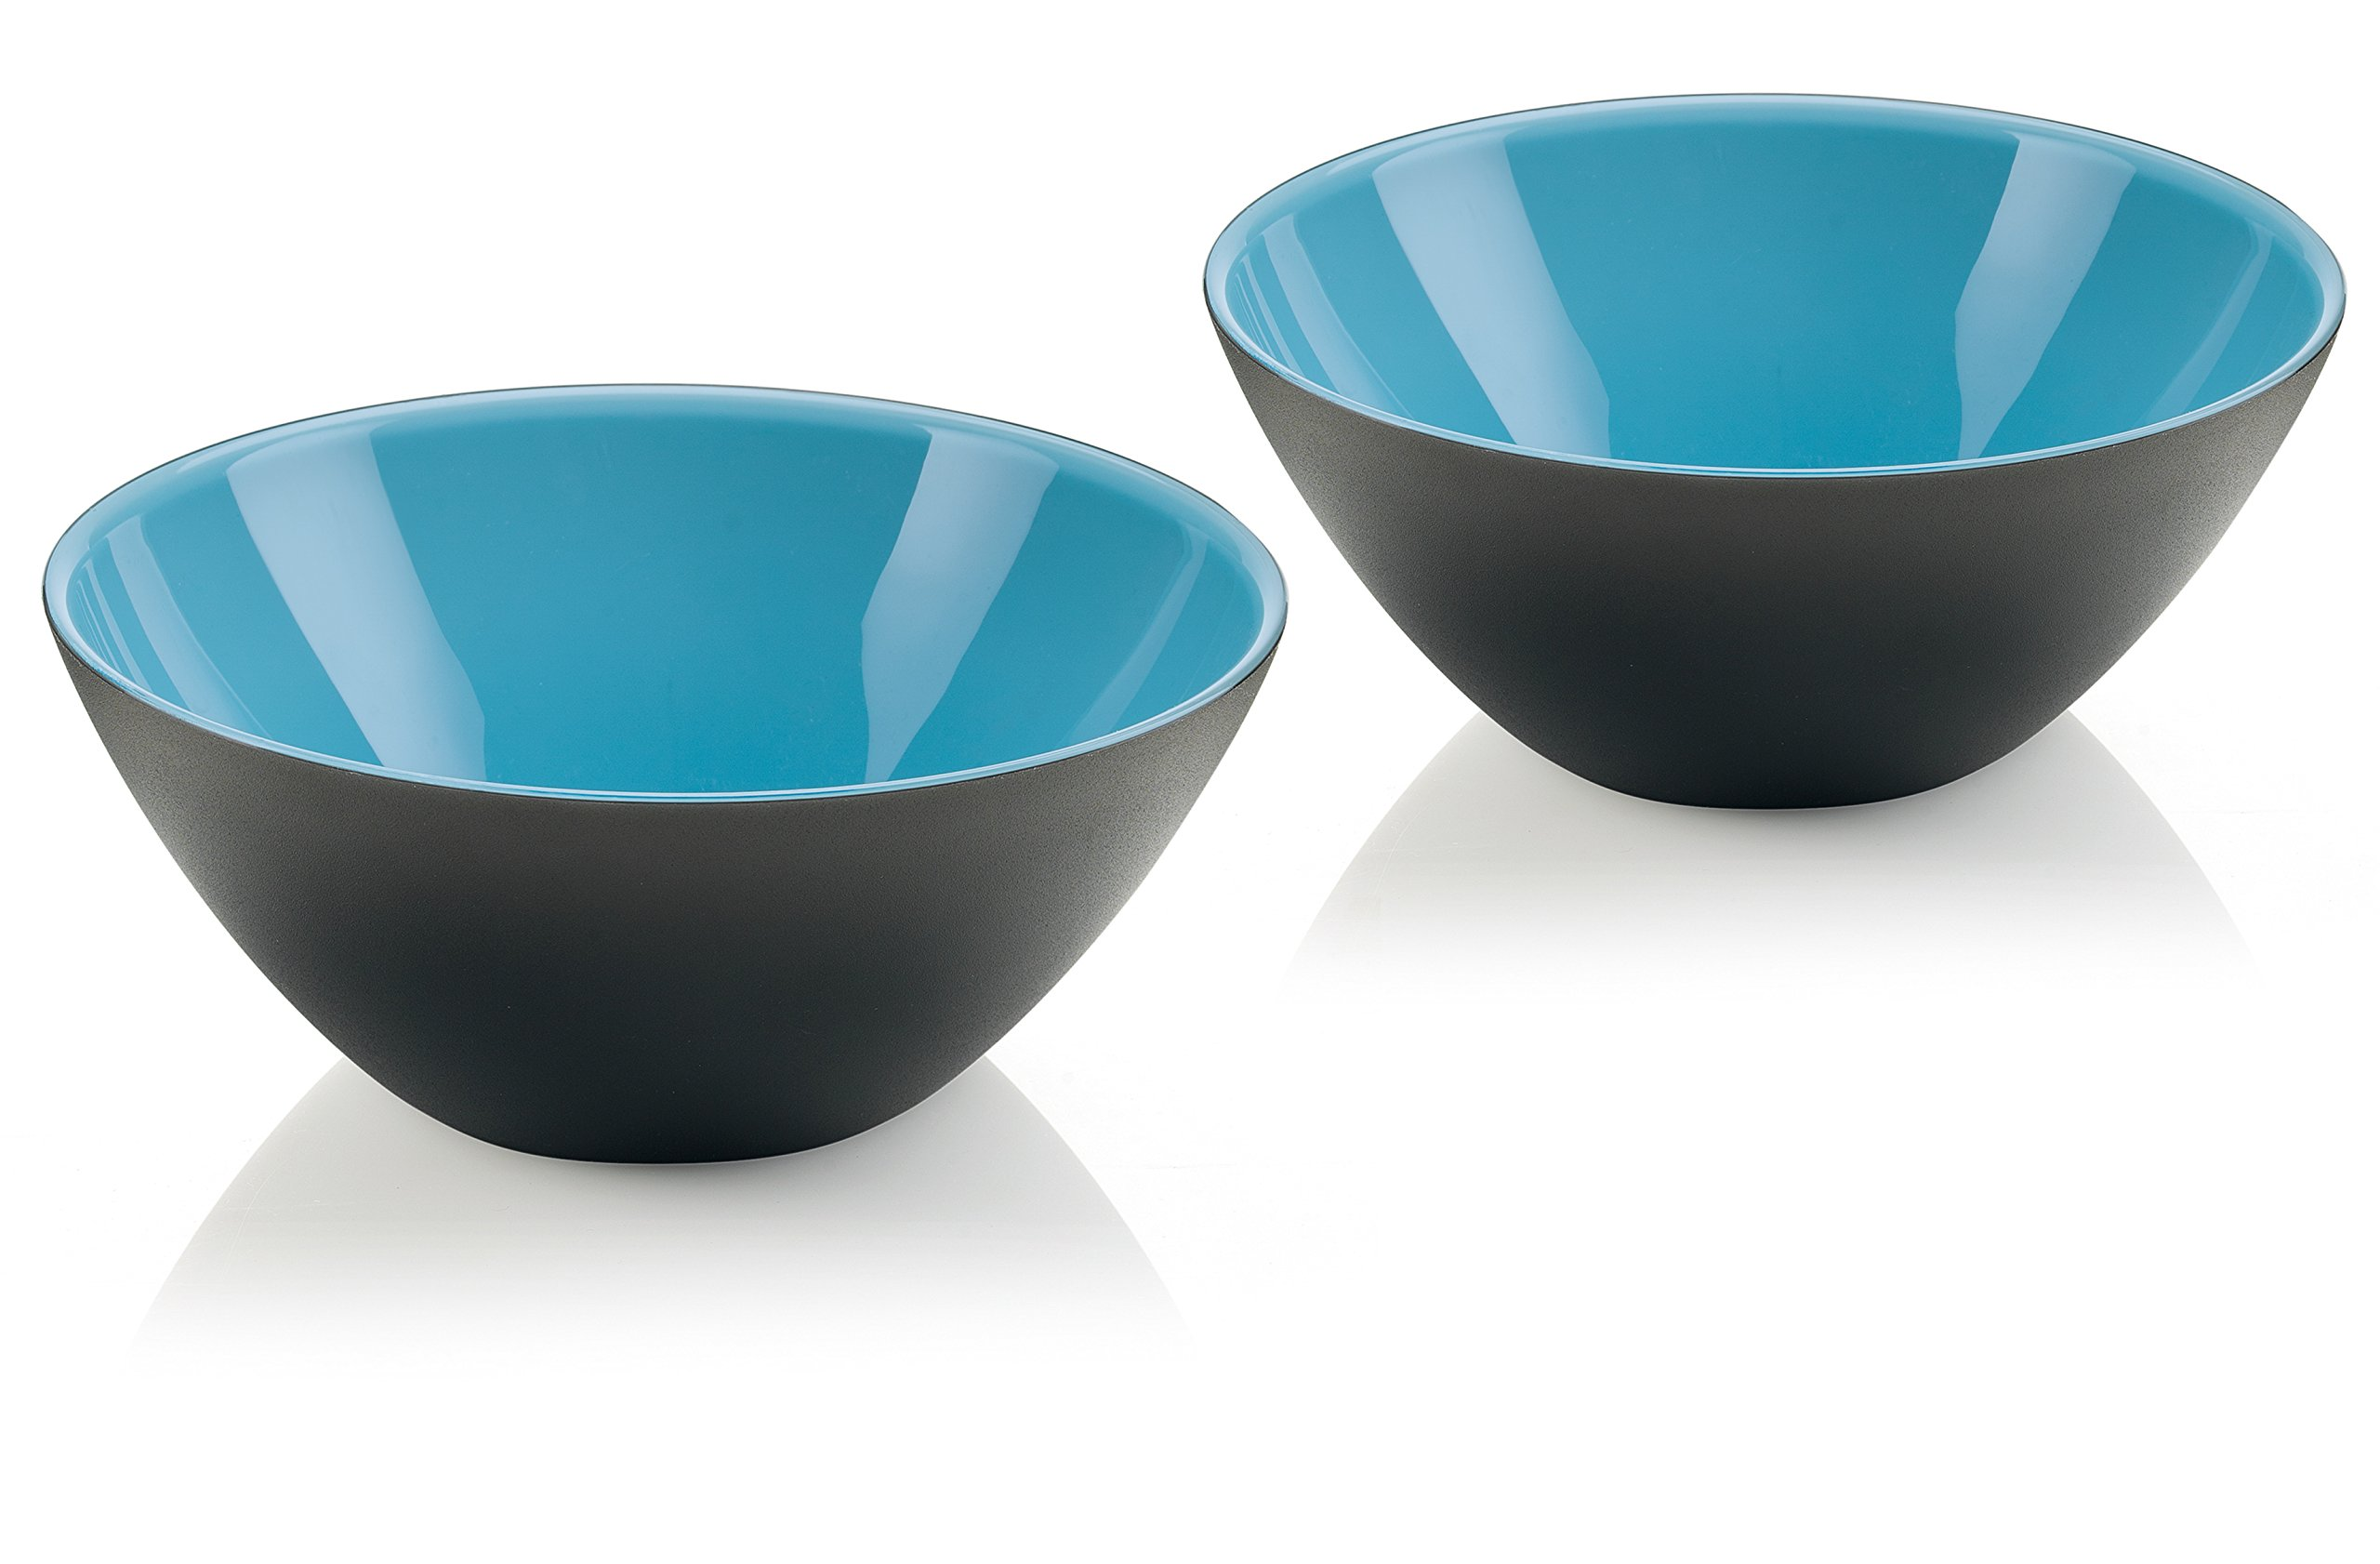 Guzzini My Fusion Small Bowls, Set of 2, BPA-Free Shatter-Resistant Acrylic, 4-3/4'' Diameter, Ideal for Desserts, Soups and Sides, Blue, Black